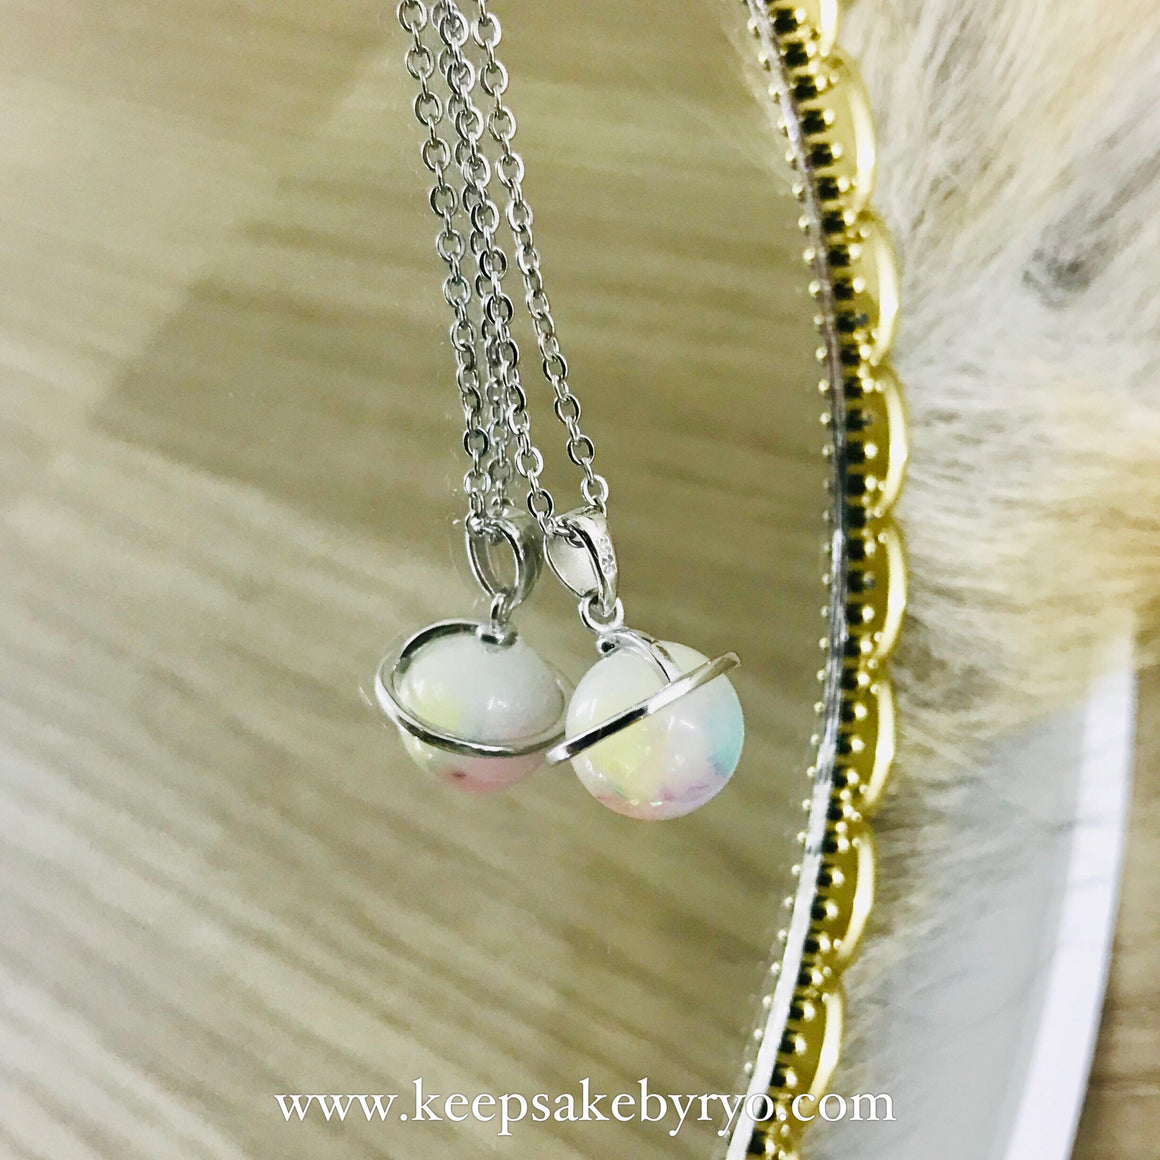 GLOBES: Pastel Rainbow Breastmilk Galaxy Globe (Necklace or Charm)